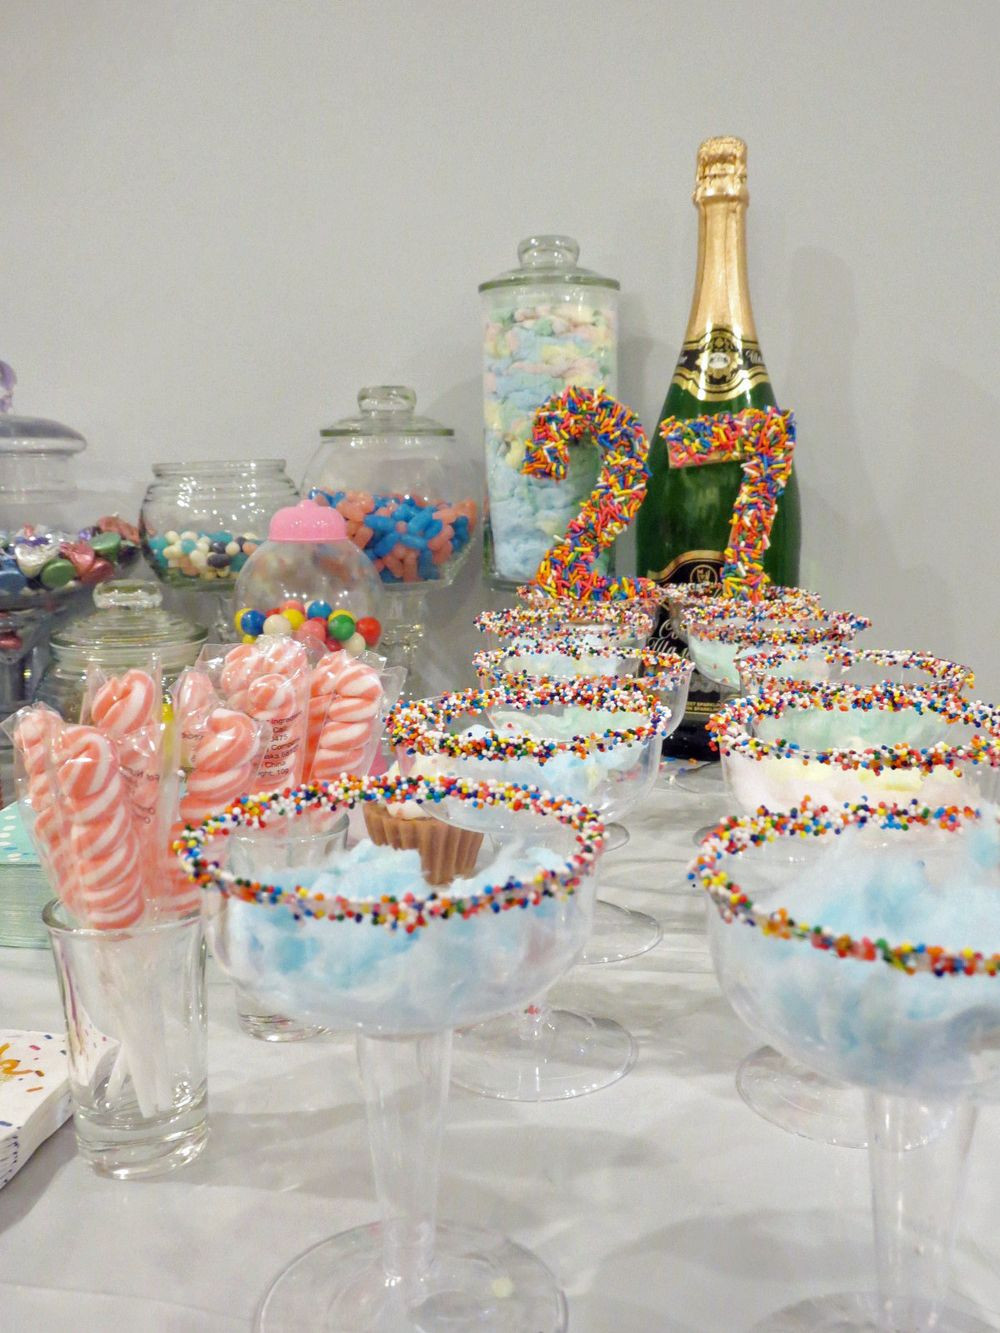 Best ideas about Birthday Celebration Ideas . Save or Pin My Sugar Sweet 27th Birthday Party Party Ideas Now.